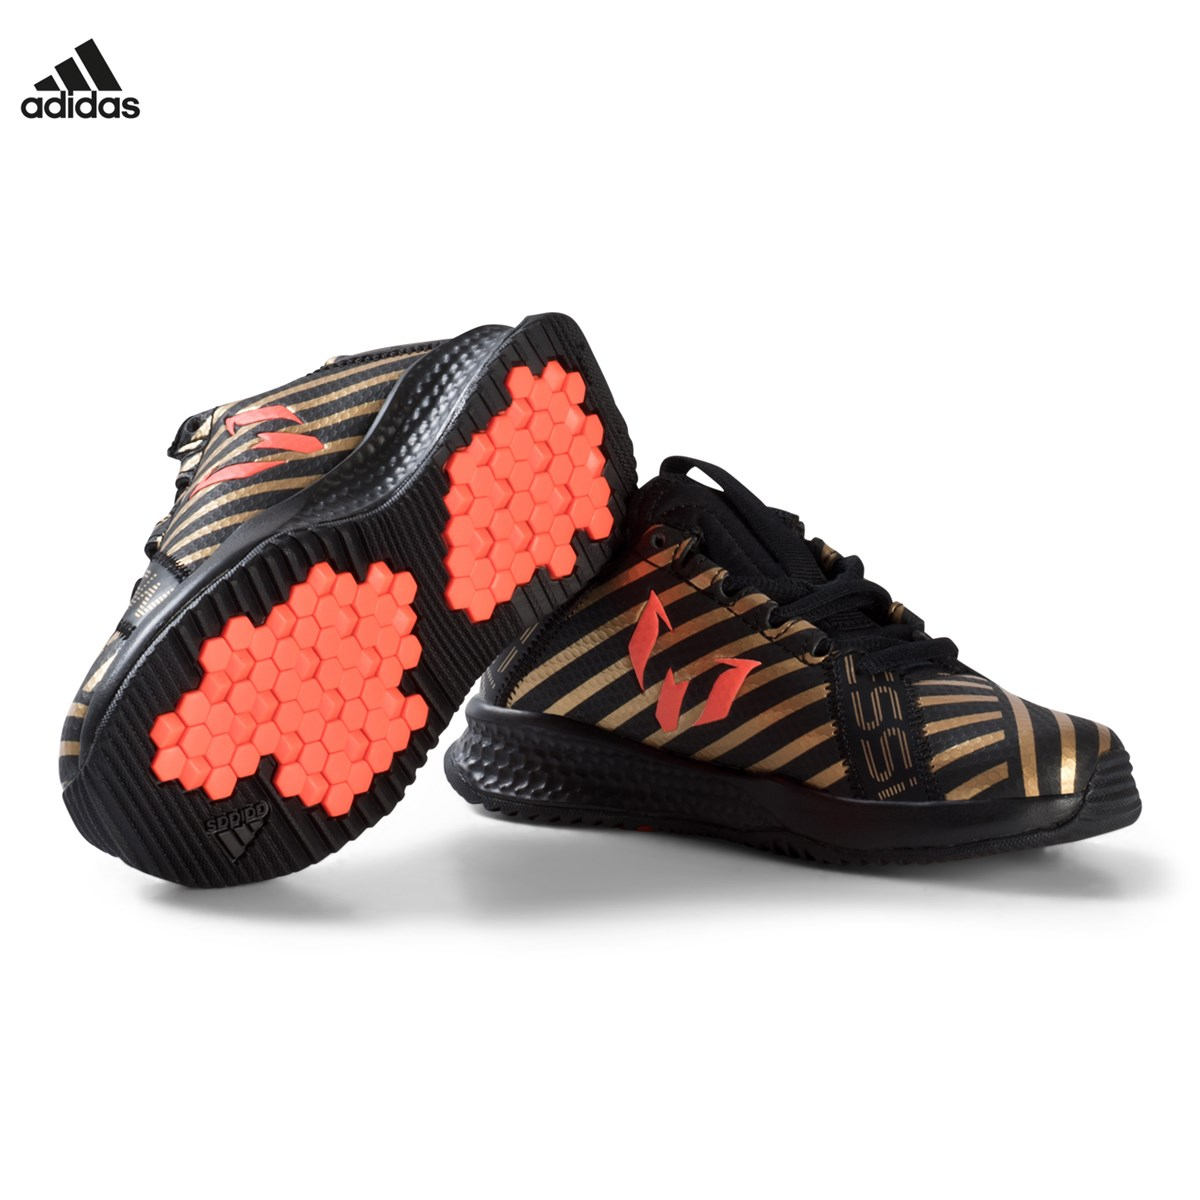 new concept 664cd 17619 adidas Performance Black, Gold and Red RapidaTurf Messi Trainers    AlexandAlexa